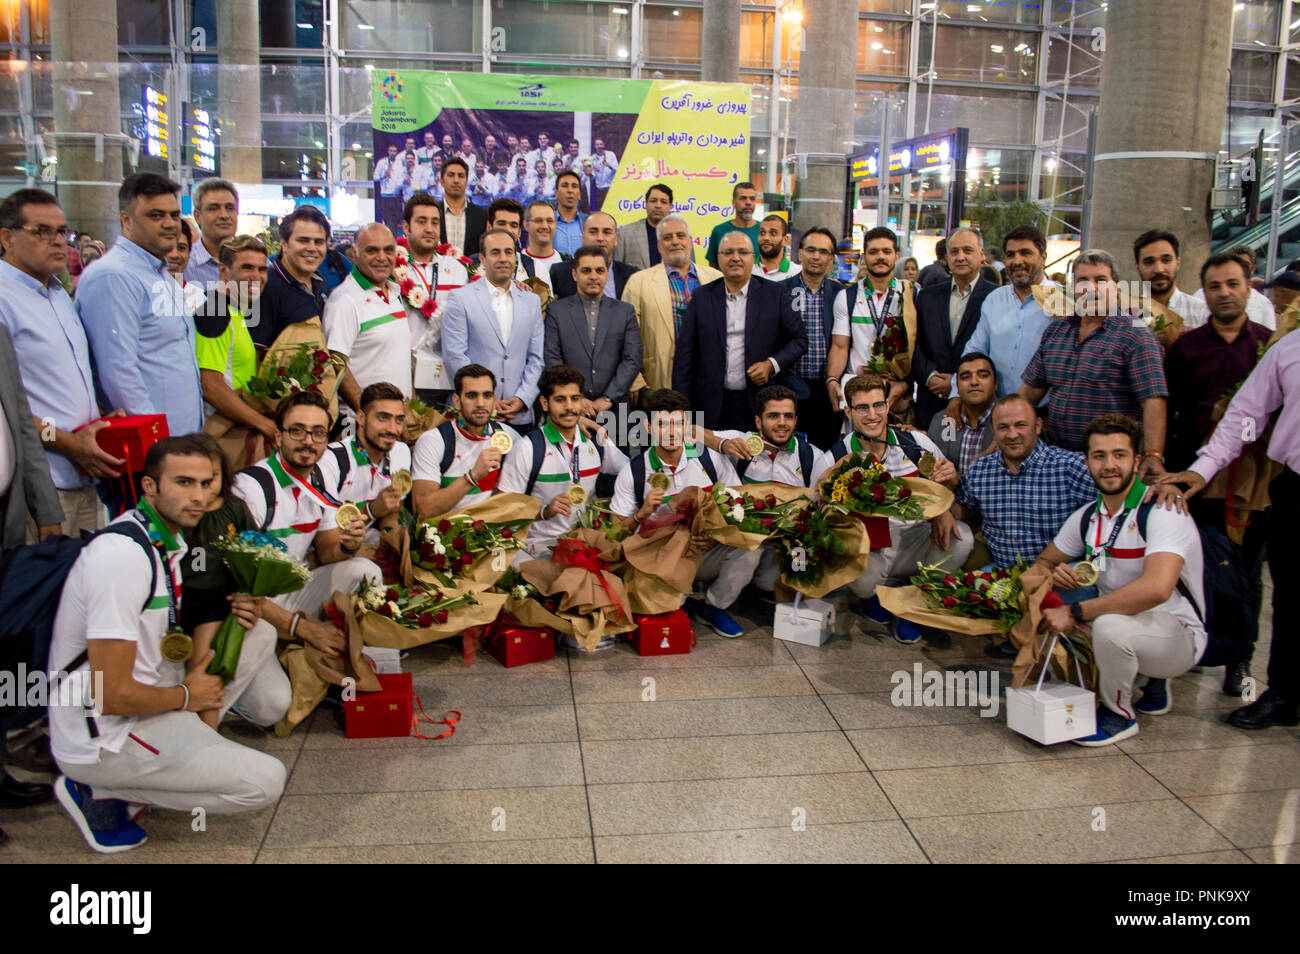 The Iranian water polo team from the 2018 Asian Games posing with their bronze medals - Stock Image